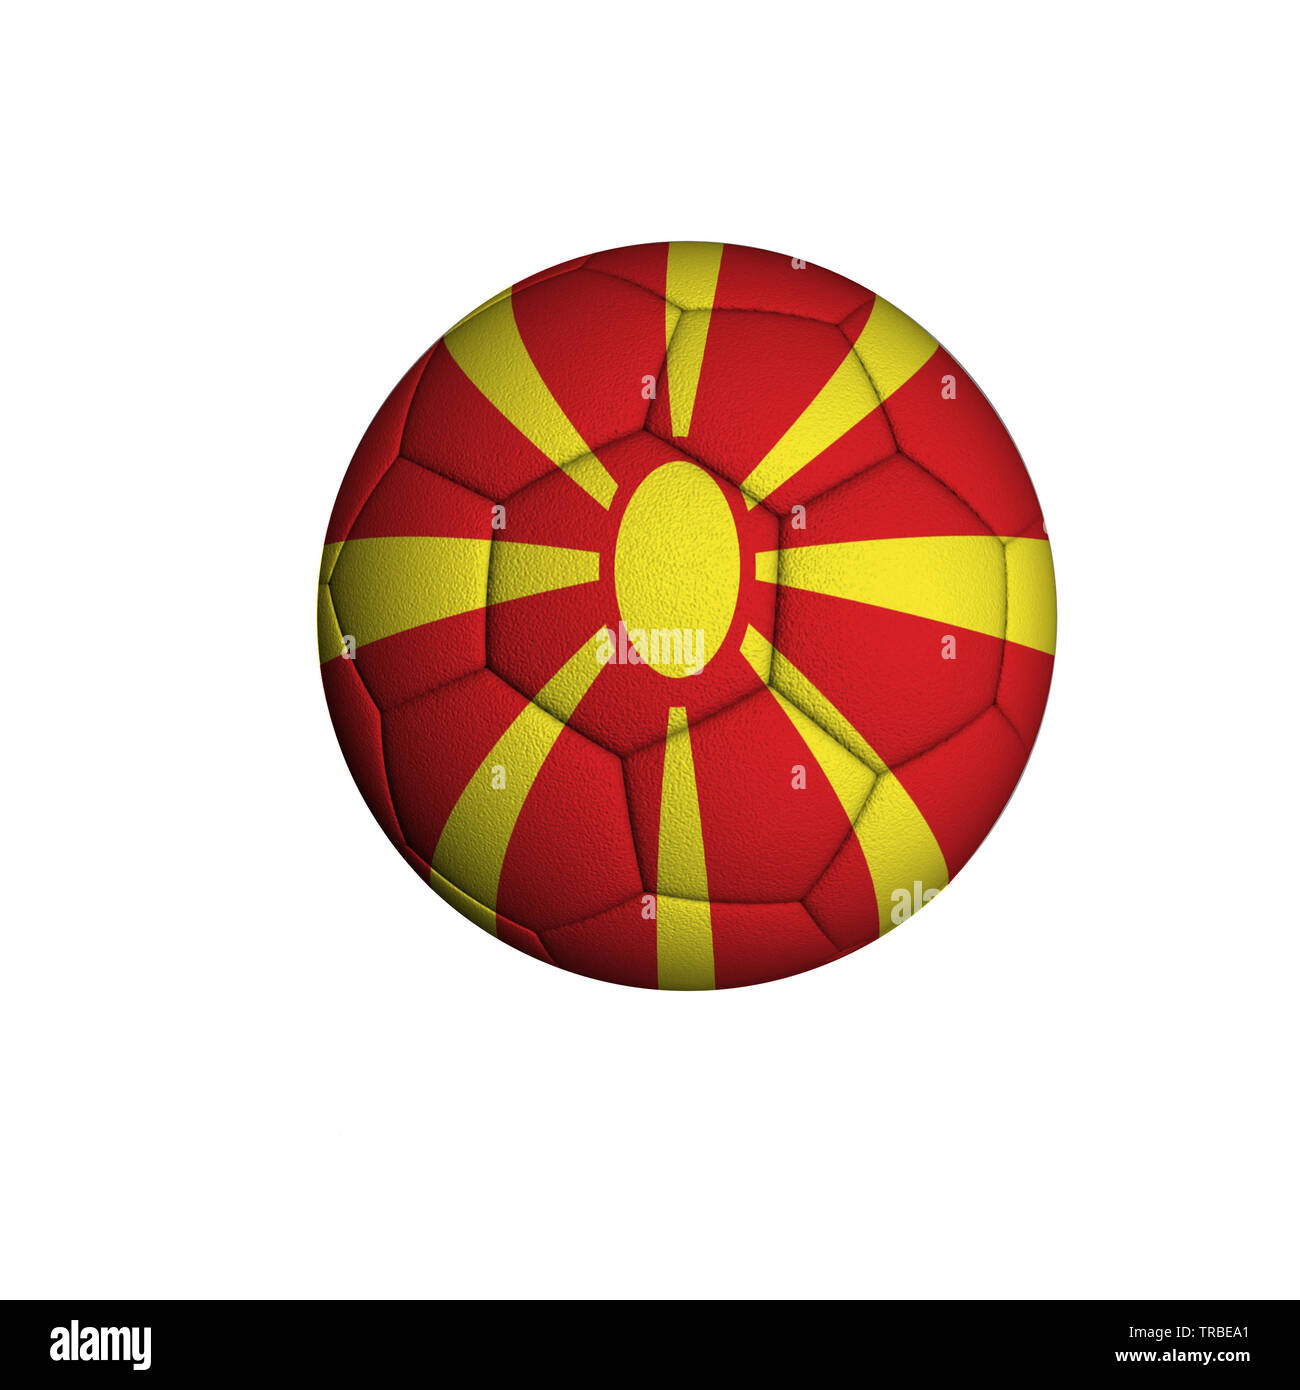 Soccer ball with the flag of Northern Macedonia isolated on a white background - Stock Image